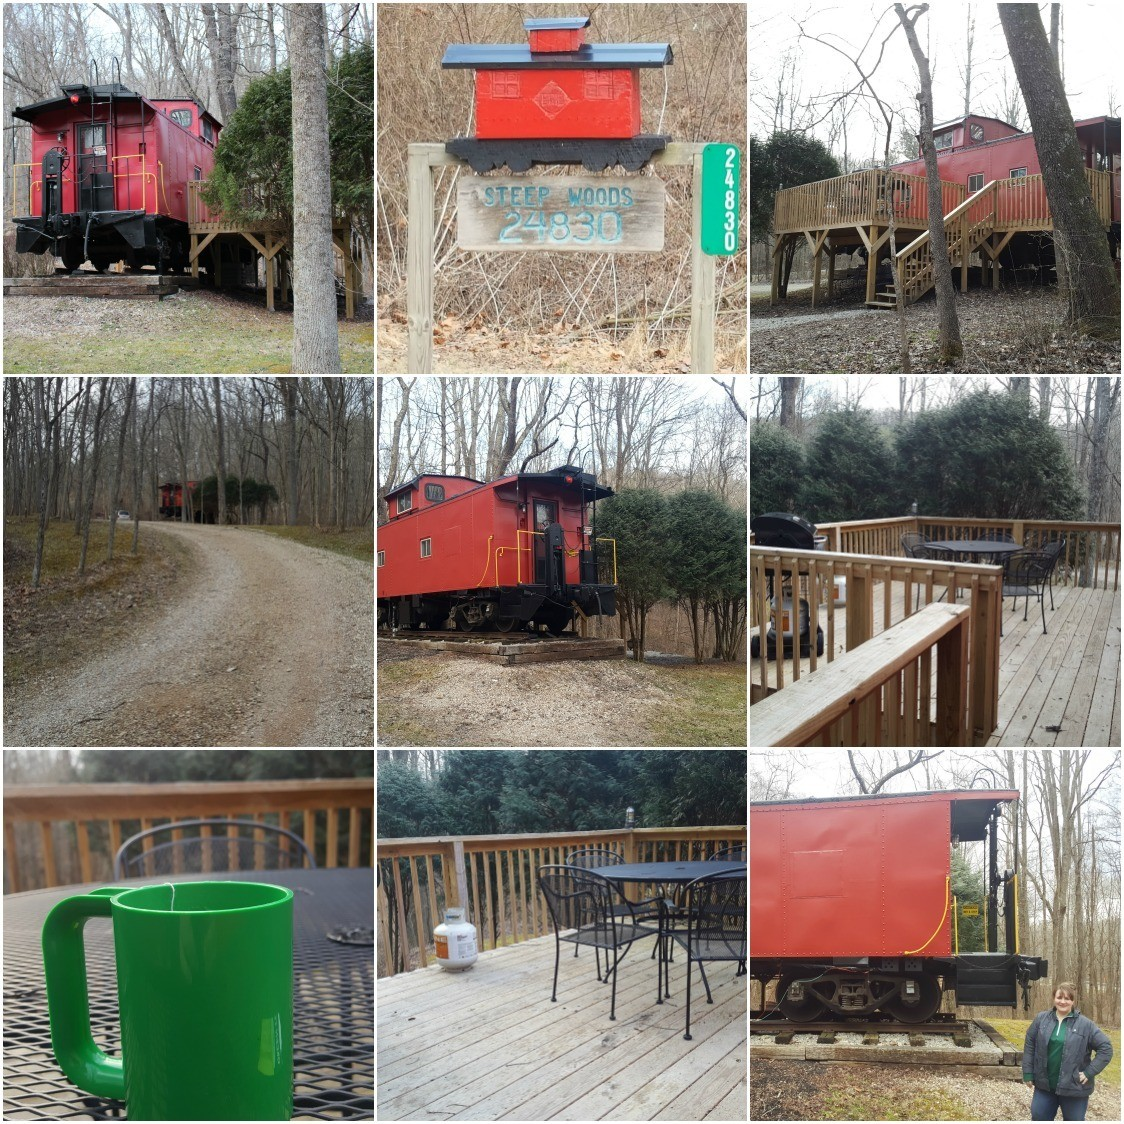 a few photos from outside the Hocking Hills Caboose